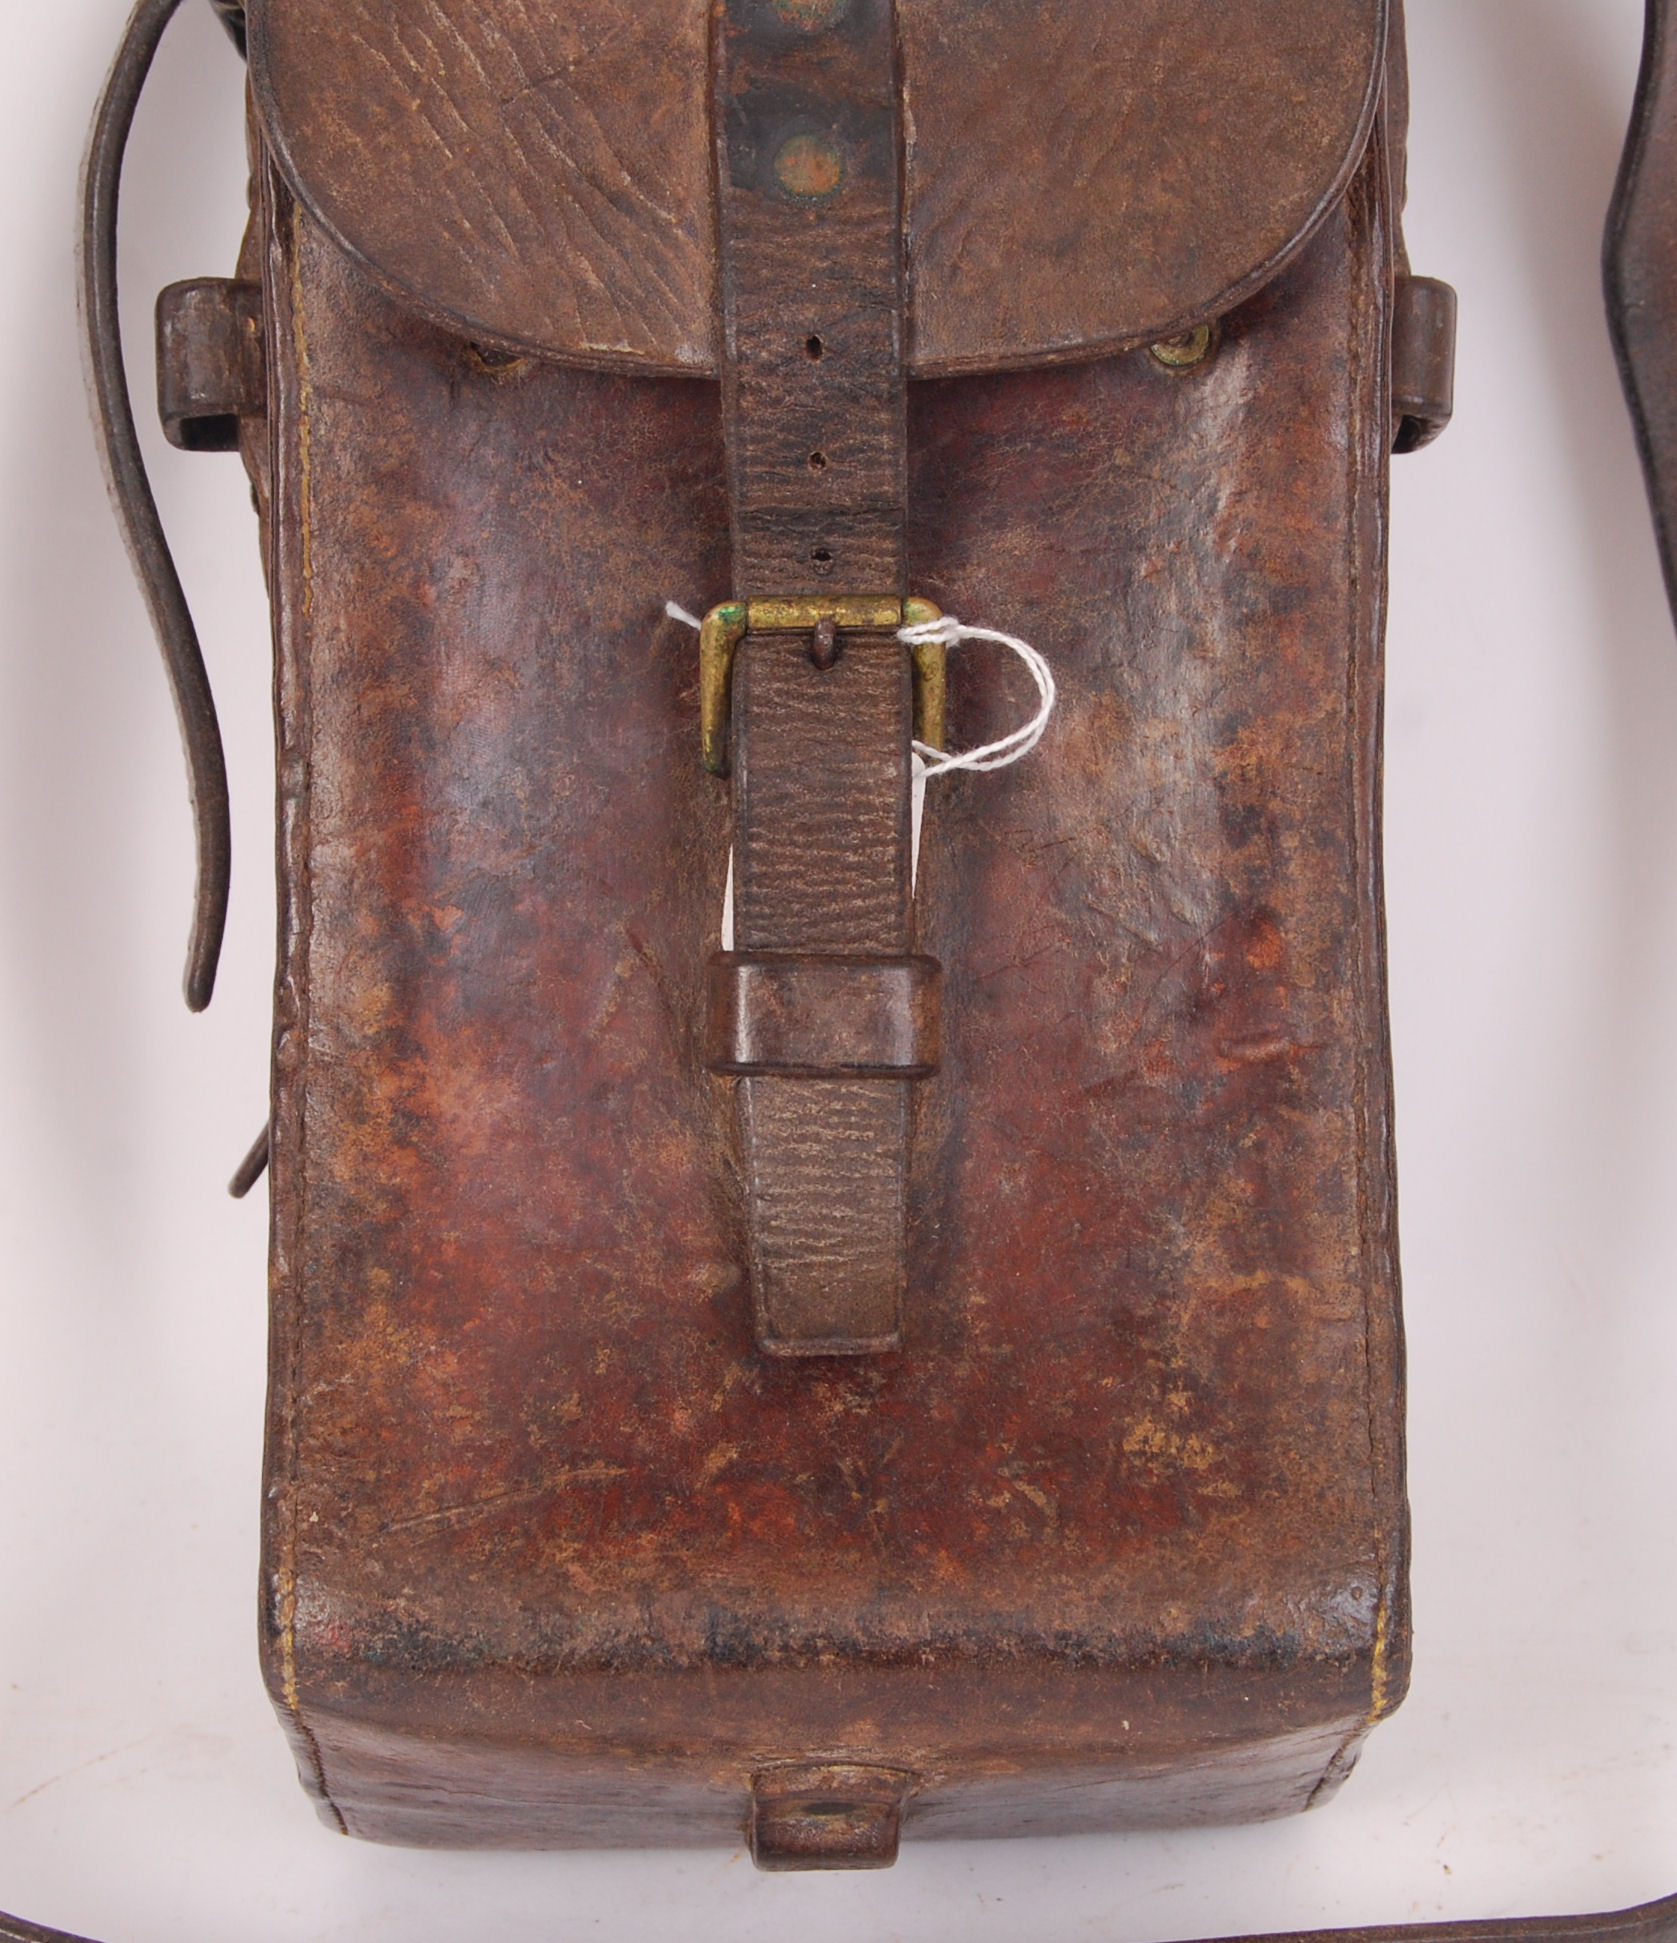 Lot 215 - WWI LEATHER POUCH